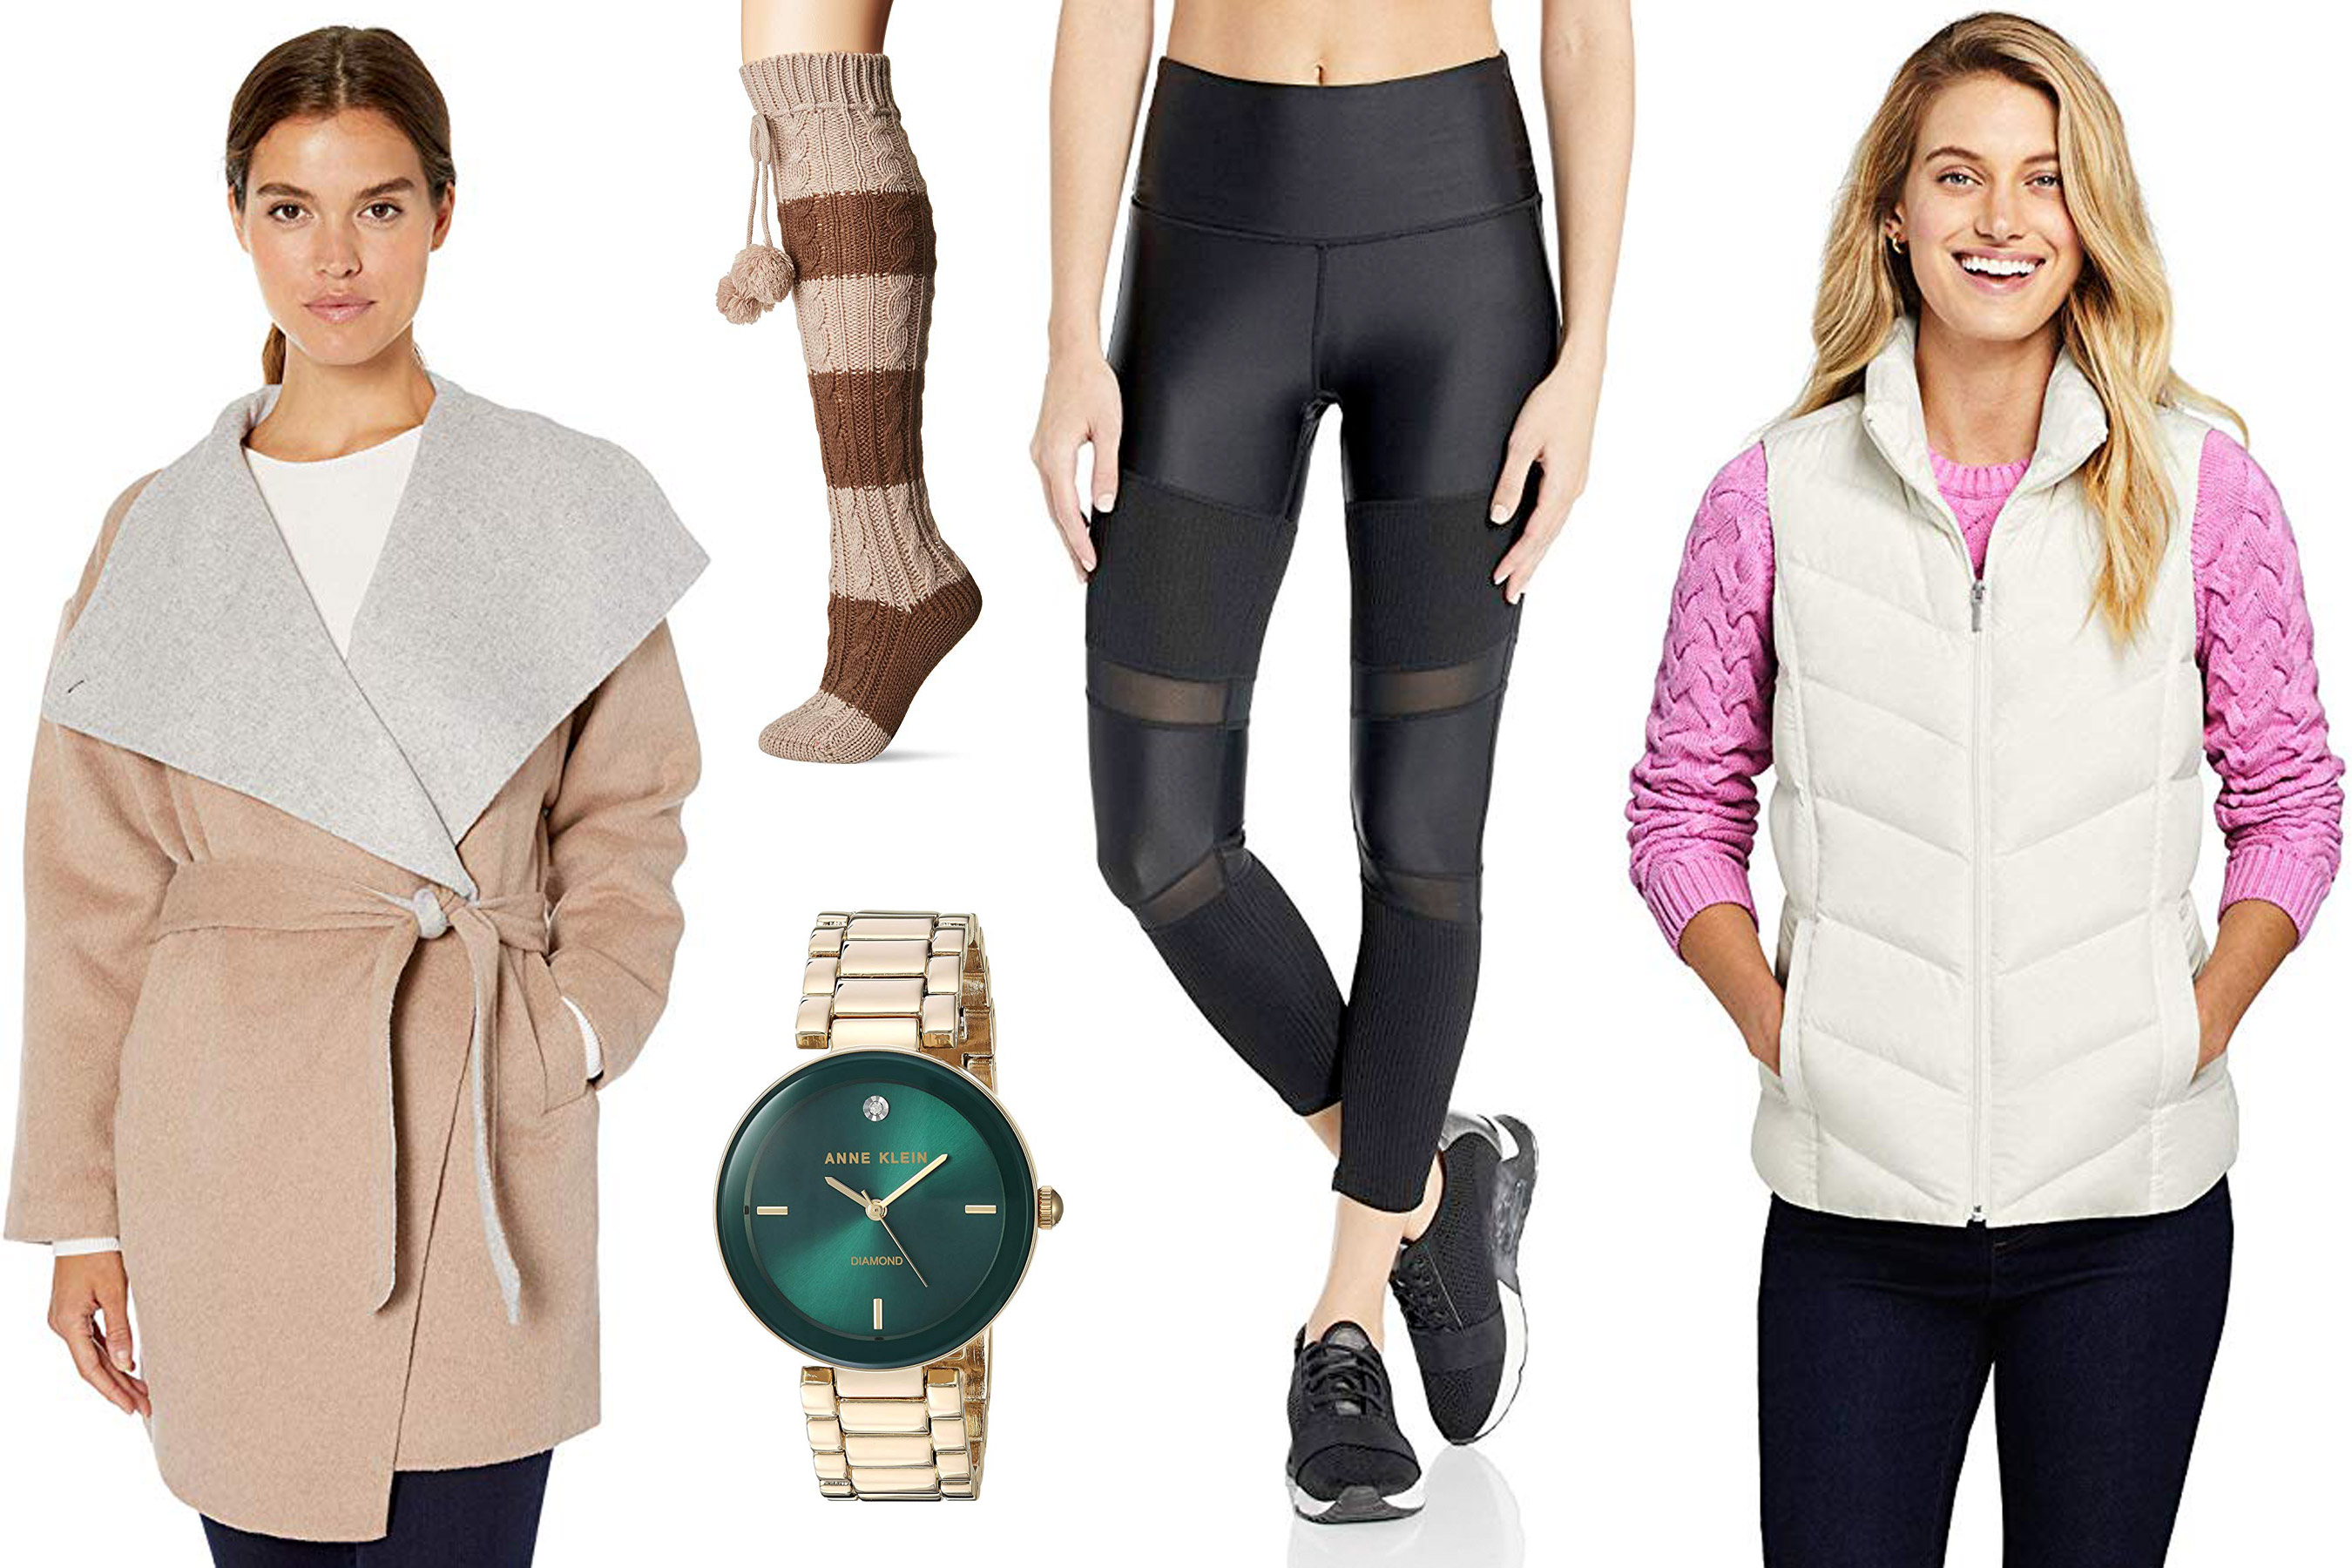 Amazon predicts these will be the 100 most popular fashion gifts this holiday season